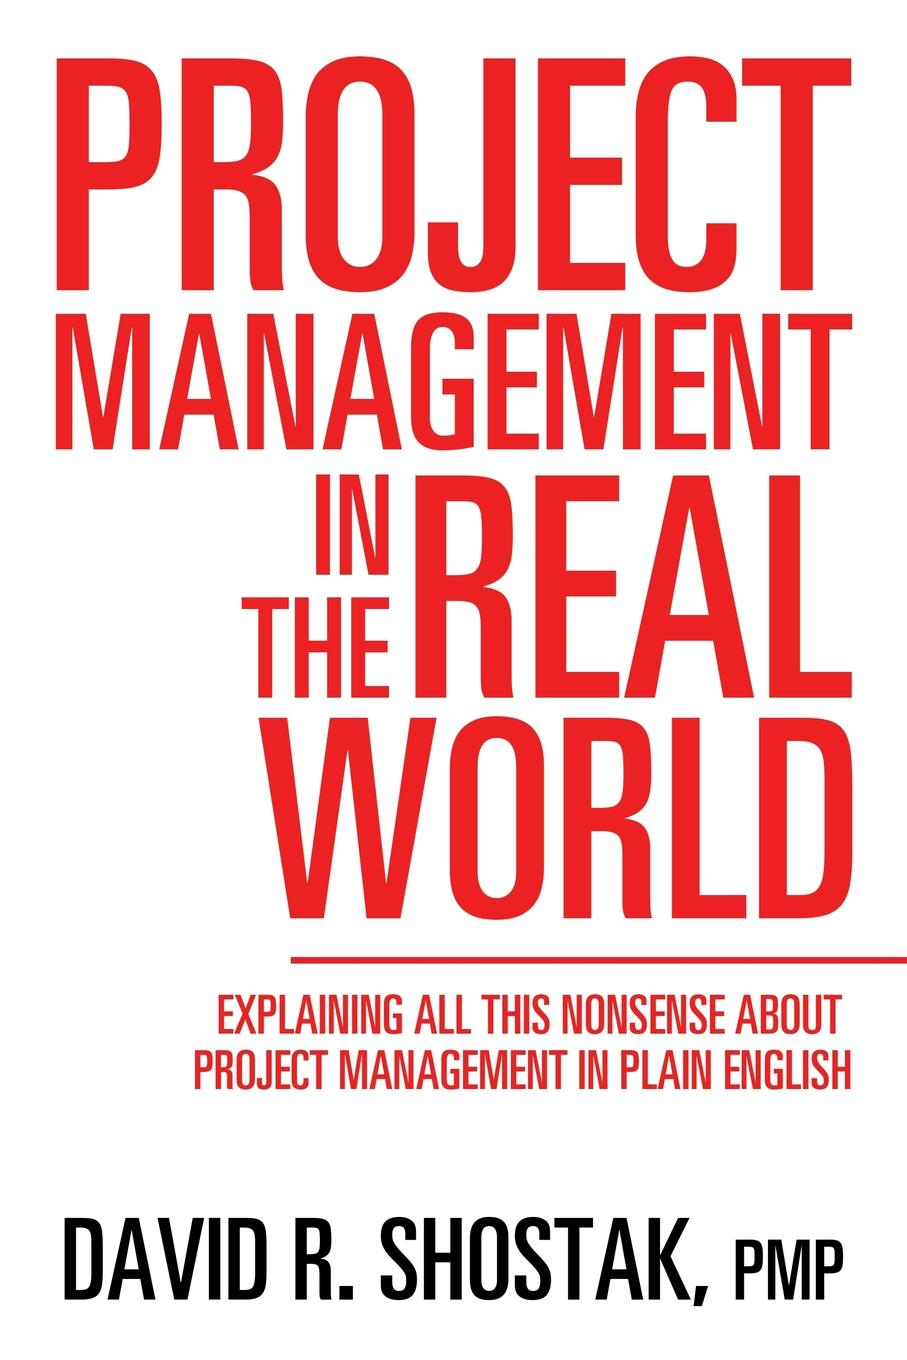 PMP David R. Shostak Project Management in the Real World. Explaining All This Nonsense About Project Management in Plain English rory burke project management leadership building creative teams